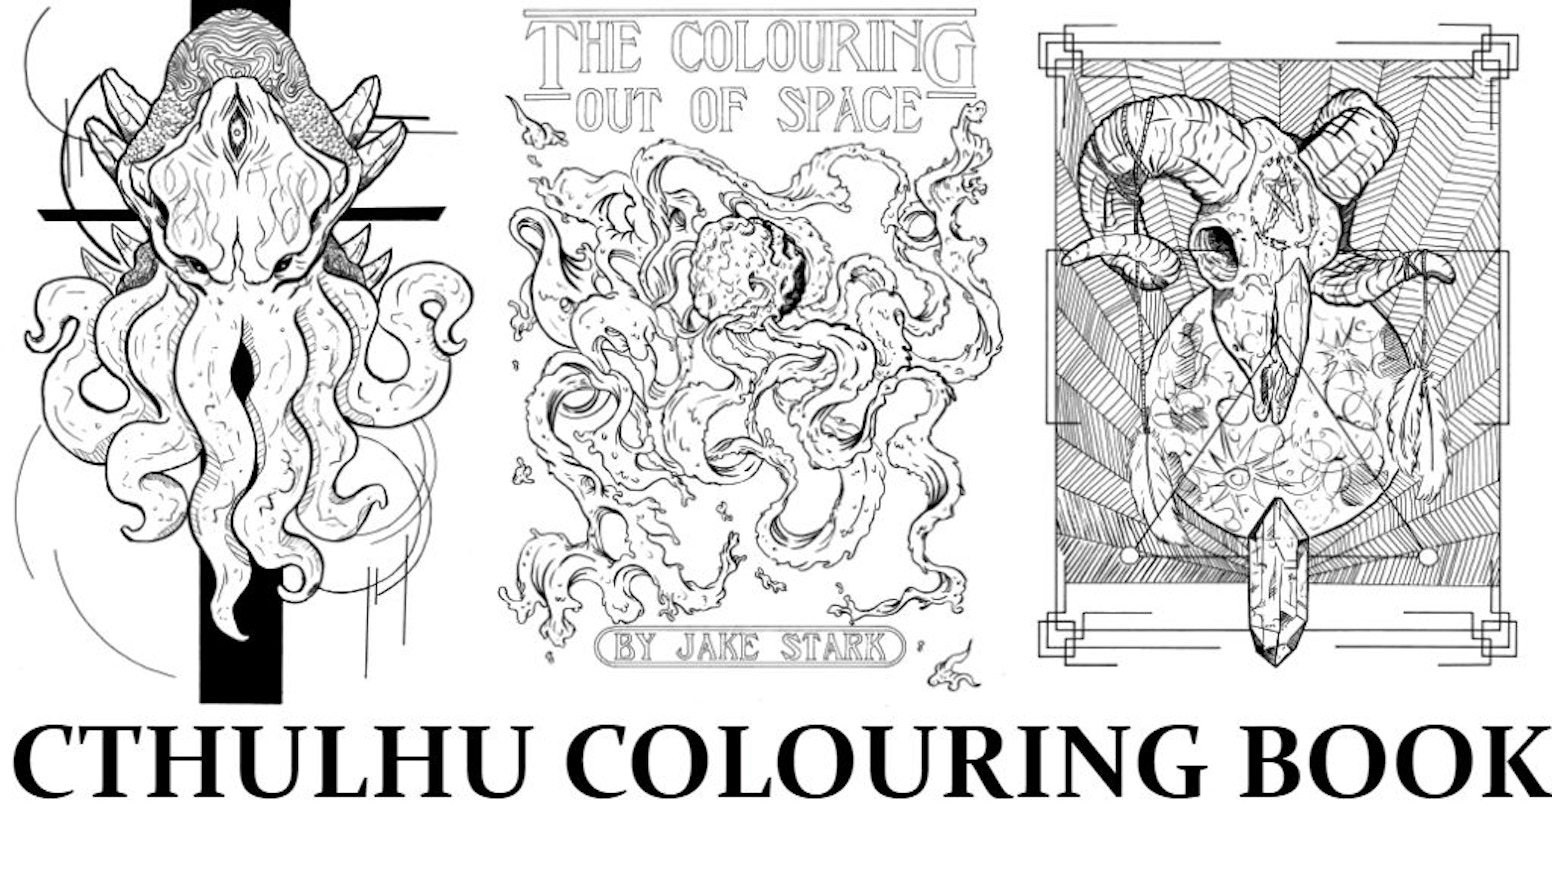 Illustrations inspired by the works of H.P. Lovecraft and the occult perfect for the cultist who wants to colour themselves crazy.